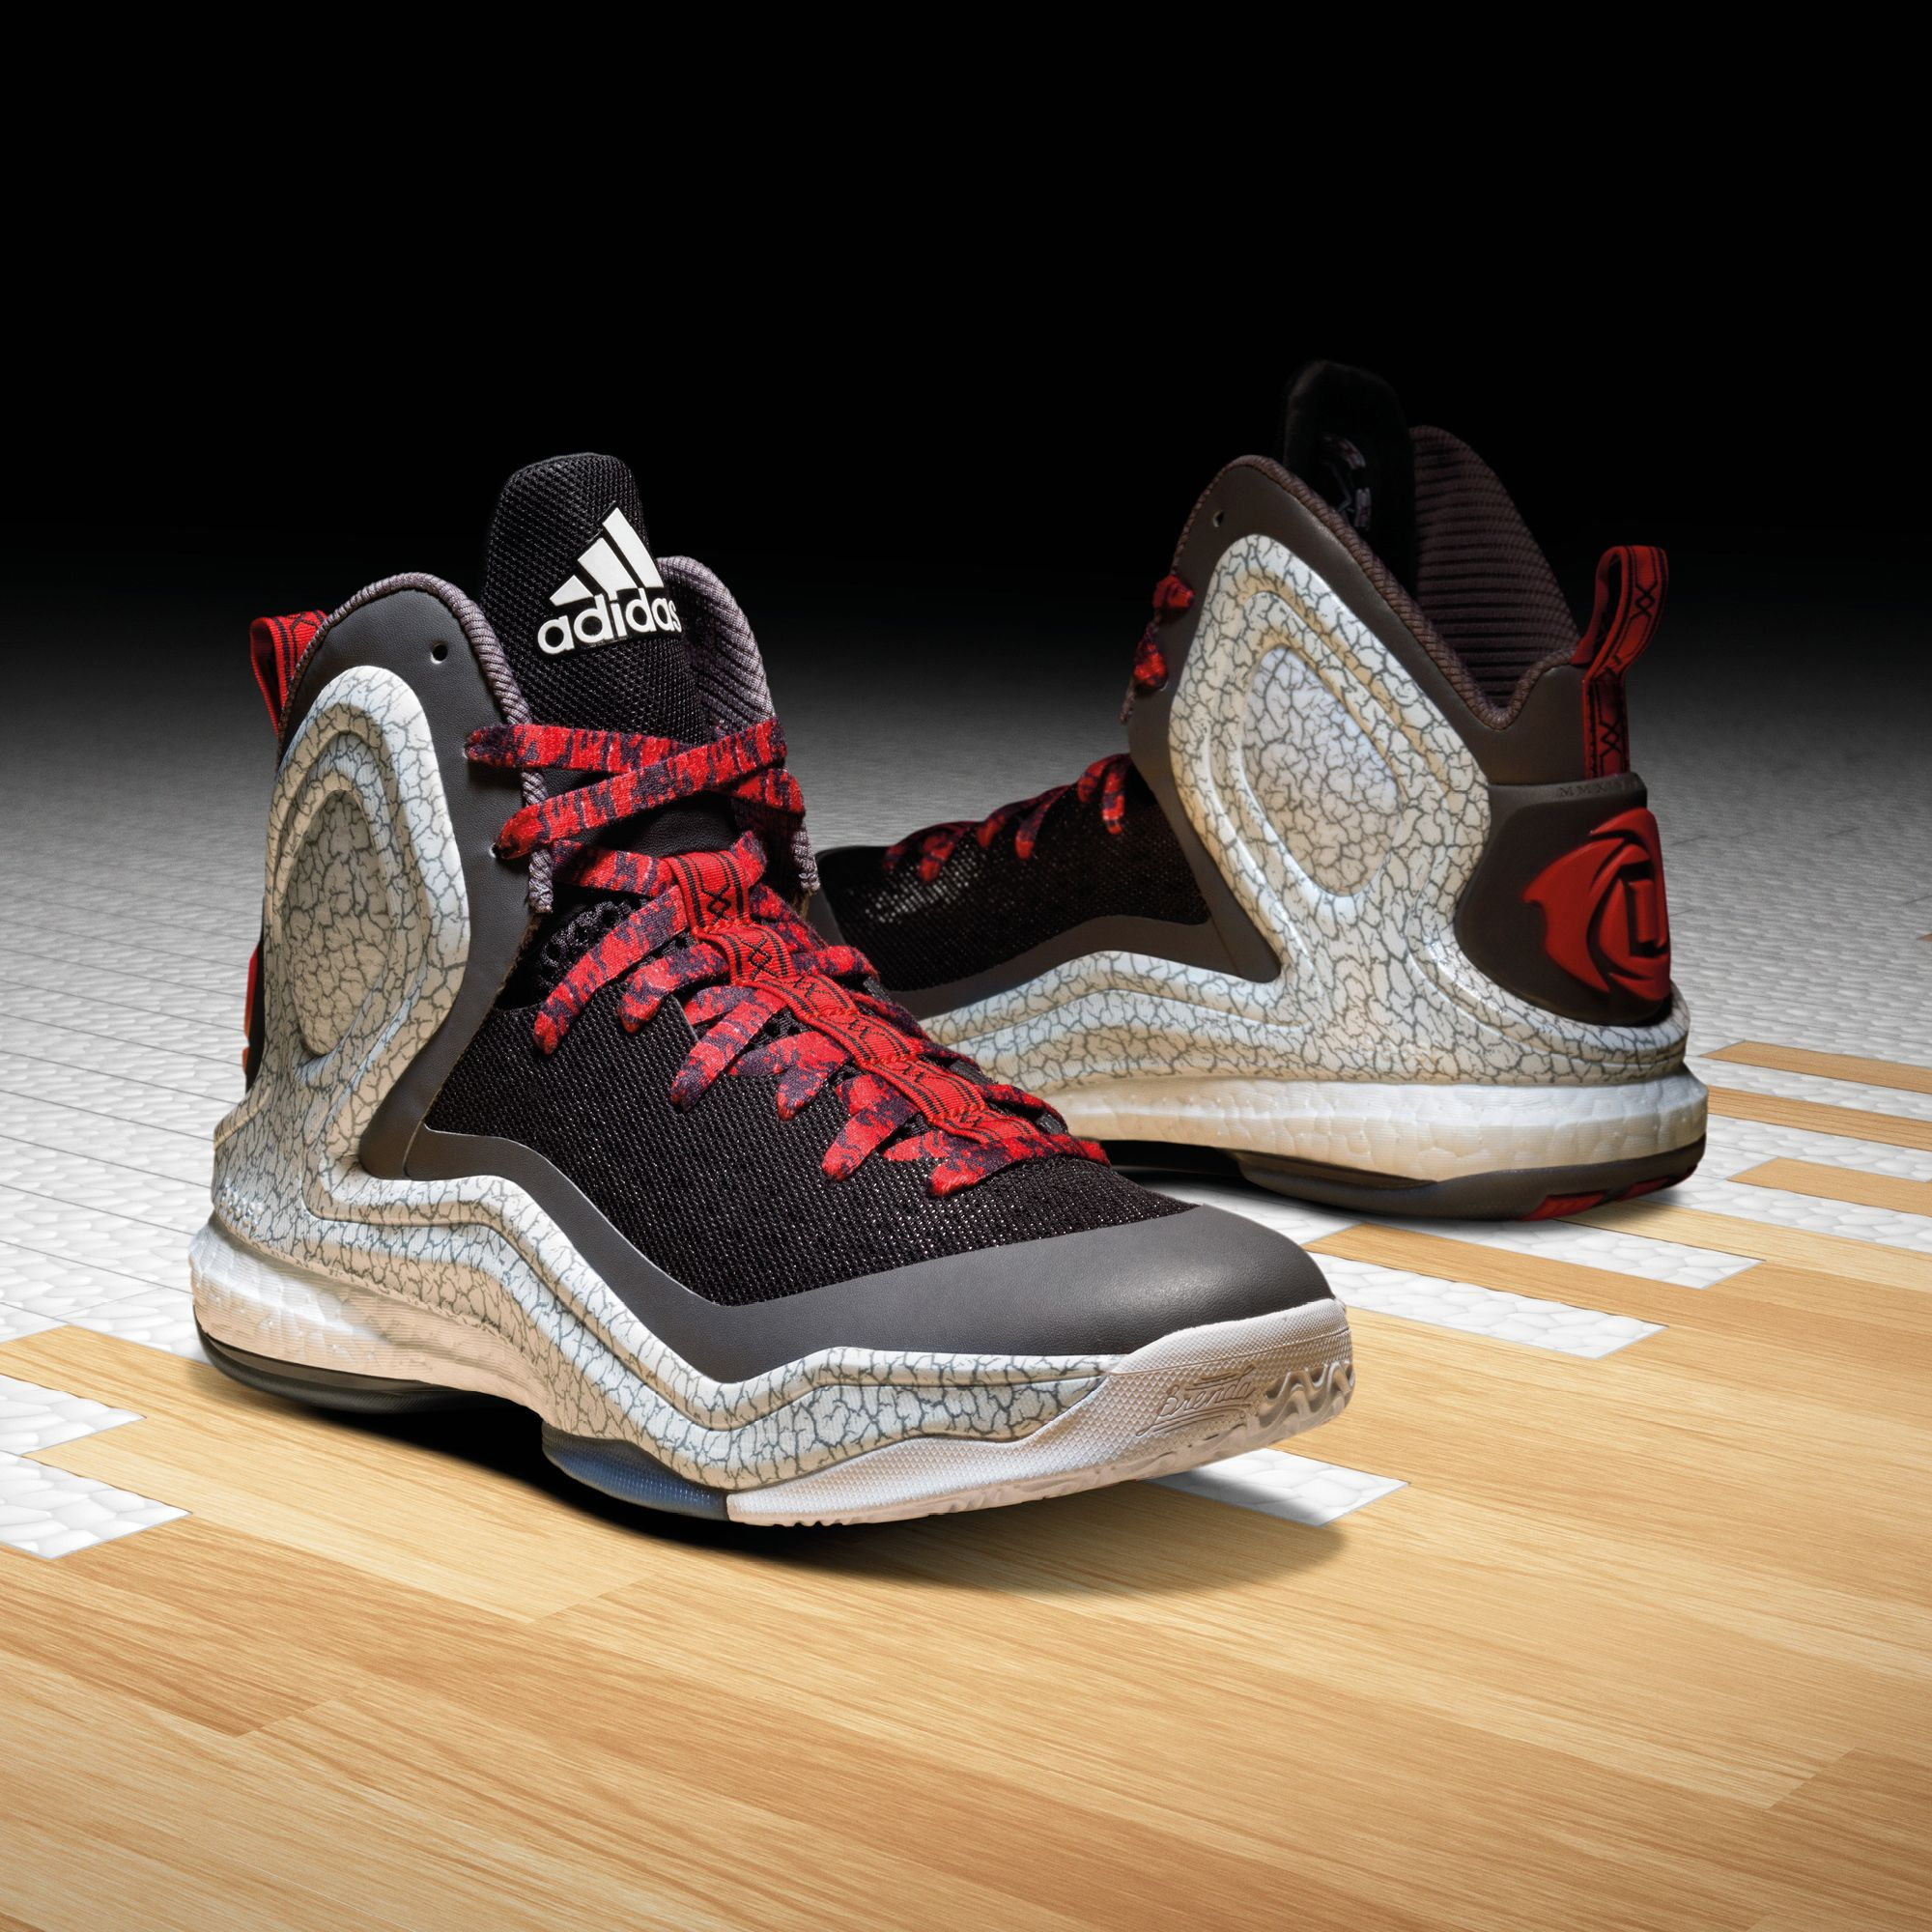 2adidas d rose 5 boost chicago ice